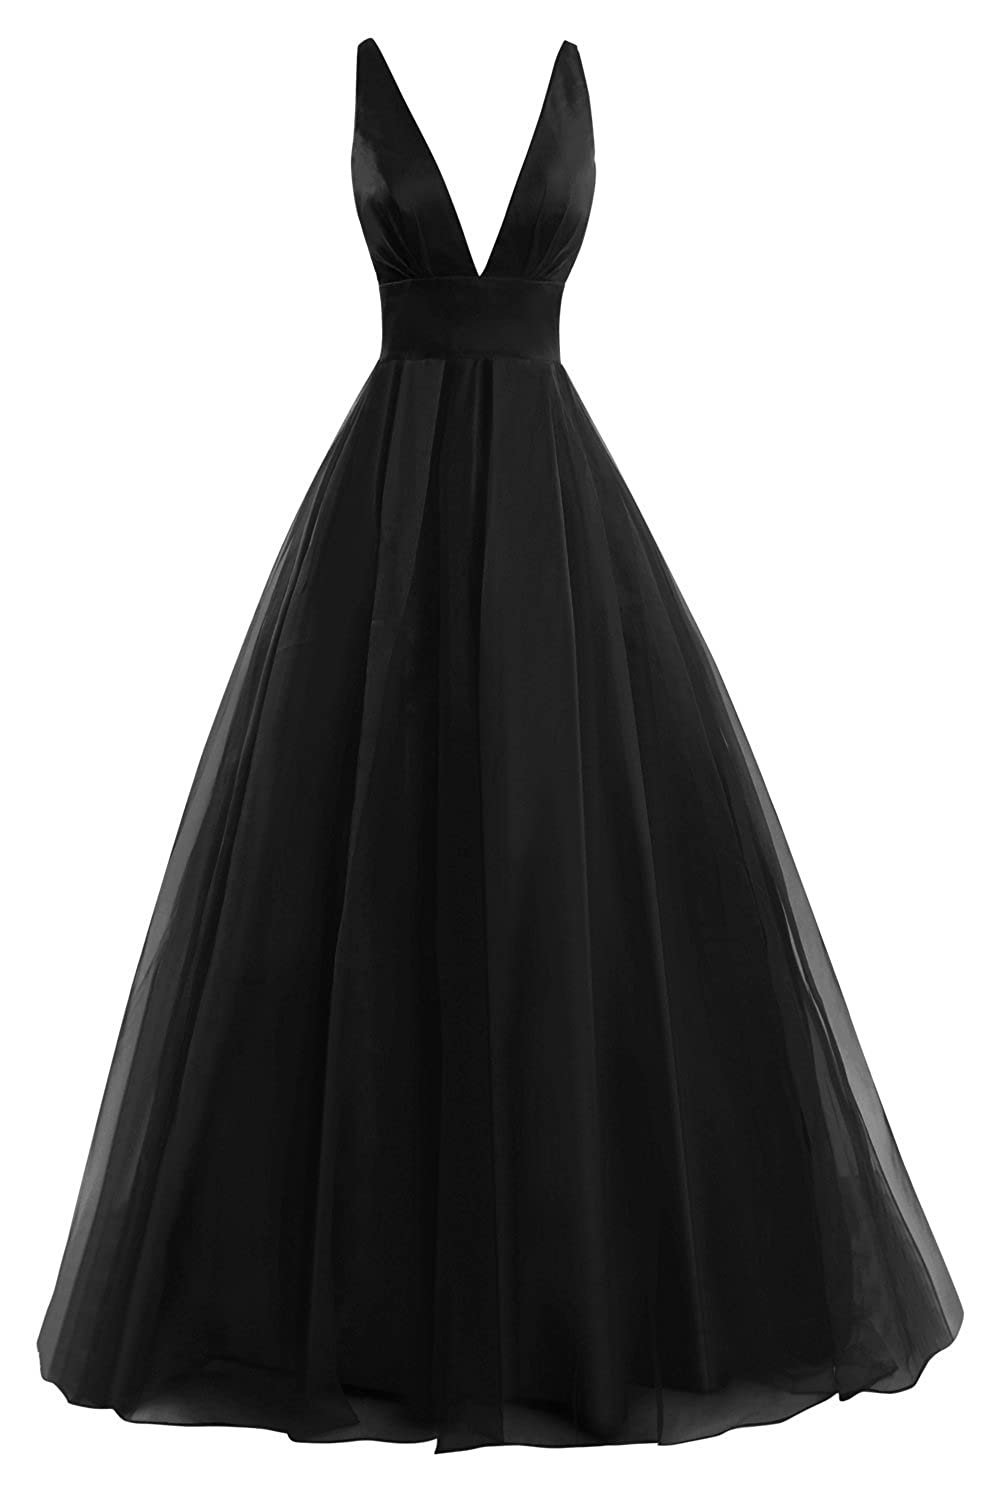 d6459539cab Amazon.com  Bess Bridal Women s Tulle Deep V Neck Prom Dress Formal Evening  Gowns  Clothing